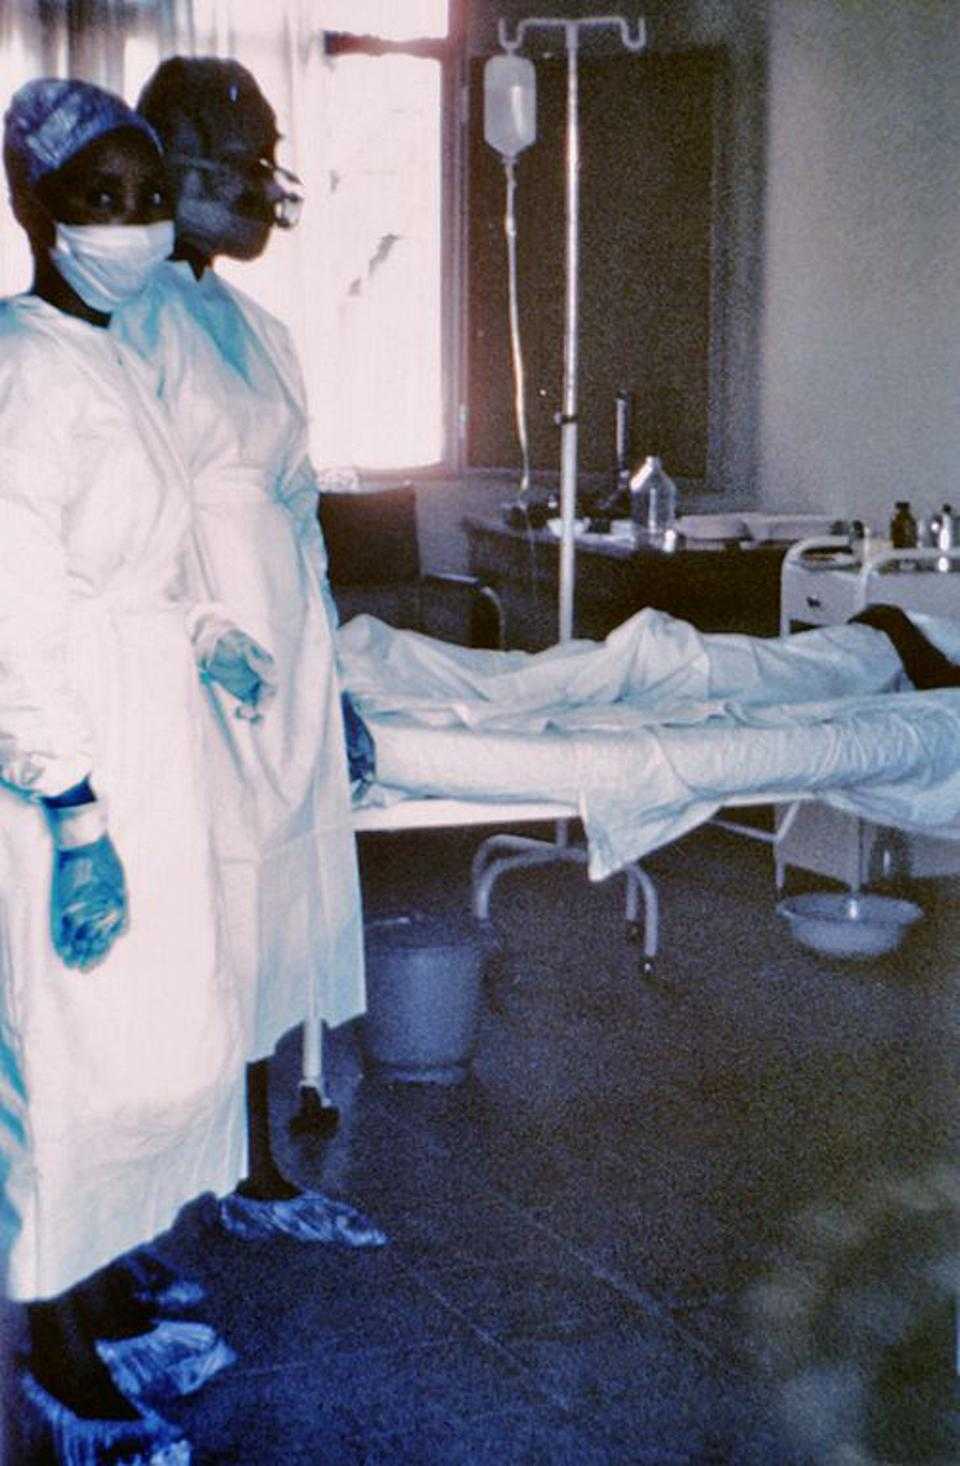 Two nurses with an Ebola patient during the 1976 outbreak of Ebola in Zaire.